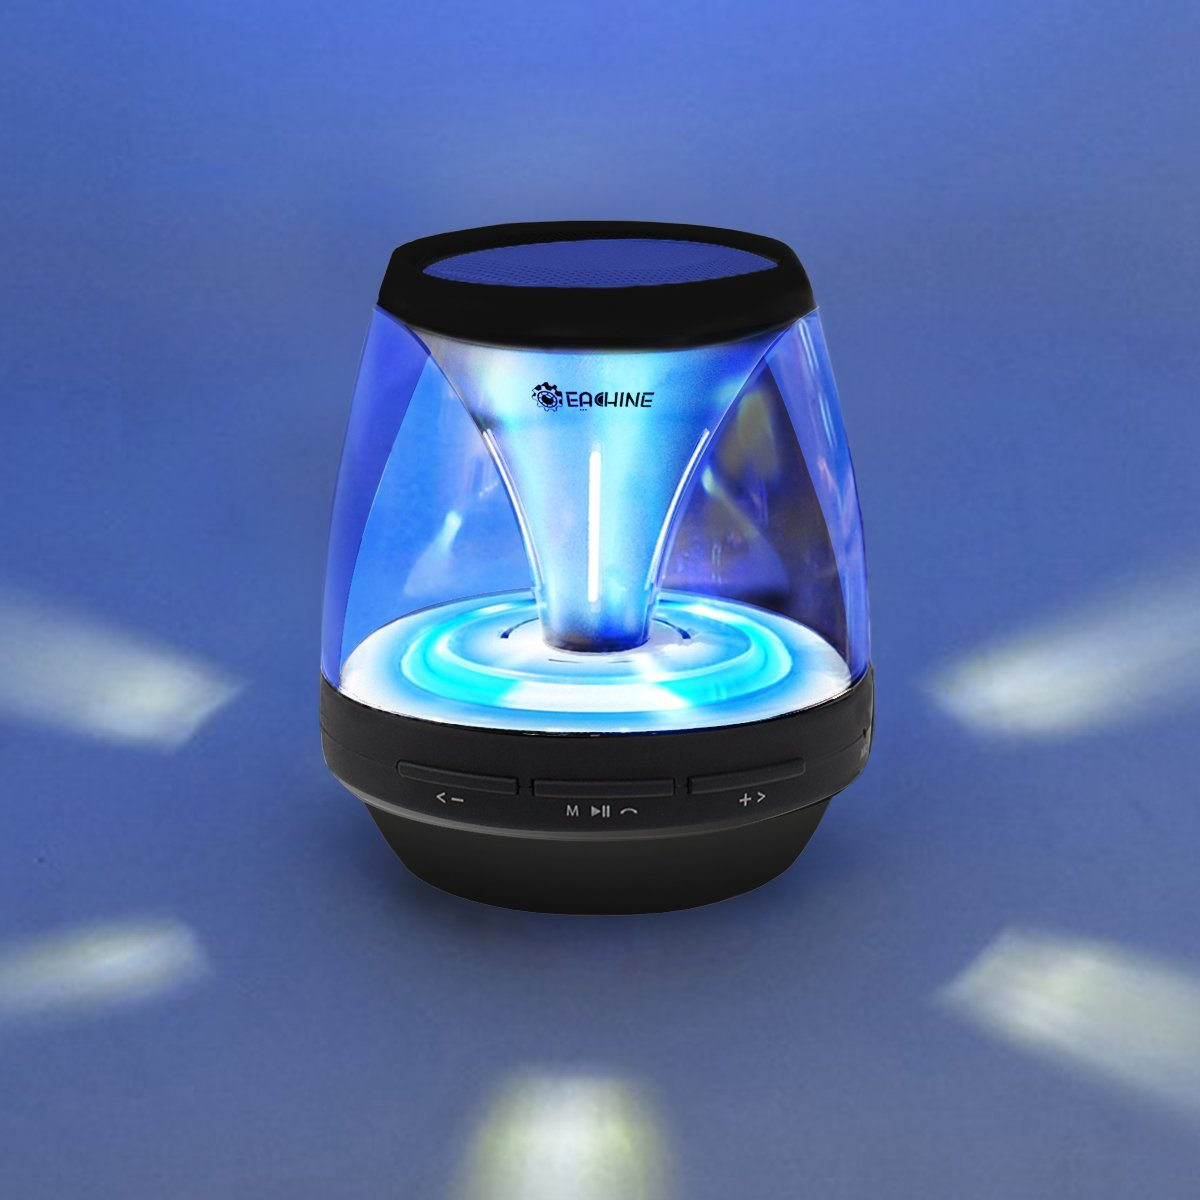 Wireless Speakers With Lights Wire Center Blinking Led Circuit Circuitdiagramorg New Vivid Jar Portable Bluetooth Speaker Rh Ksrplayer Net Disco